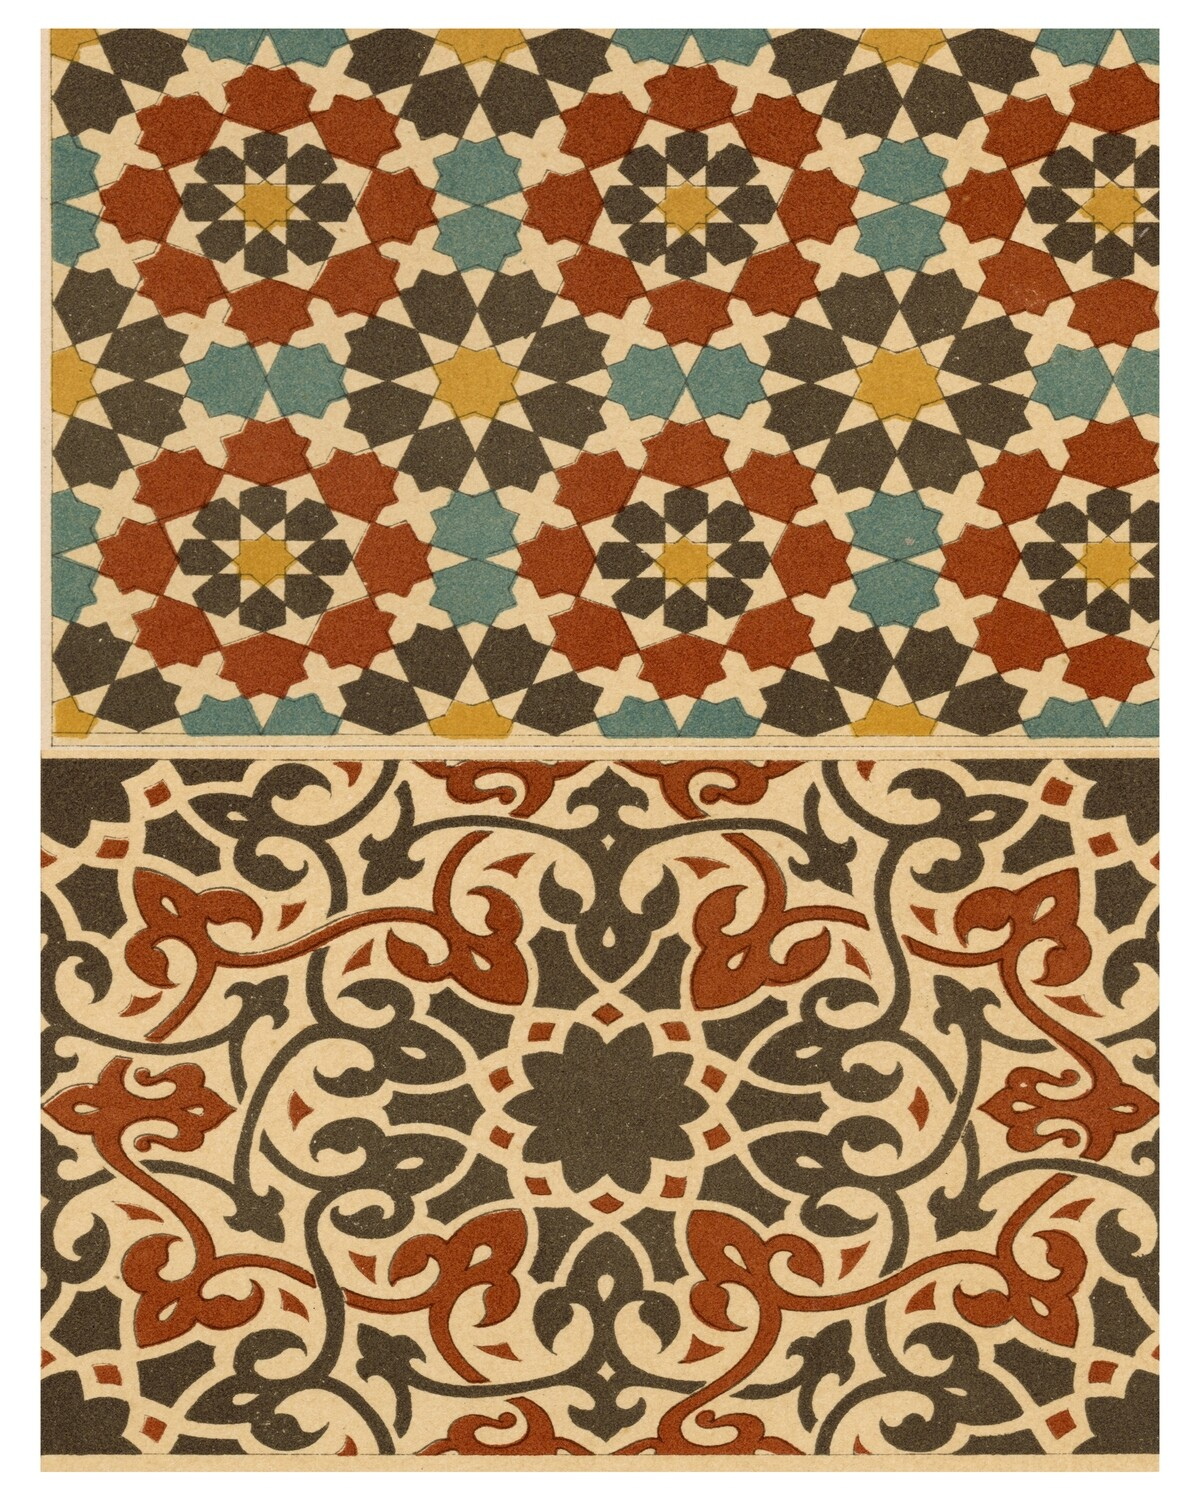 Marikesh Patterns collage pak instant download 5 pages